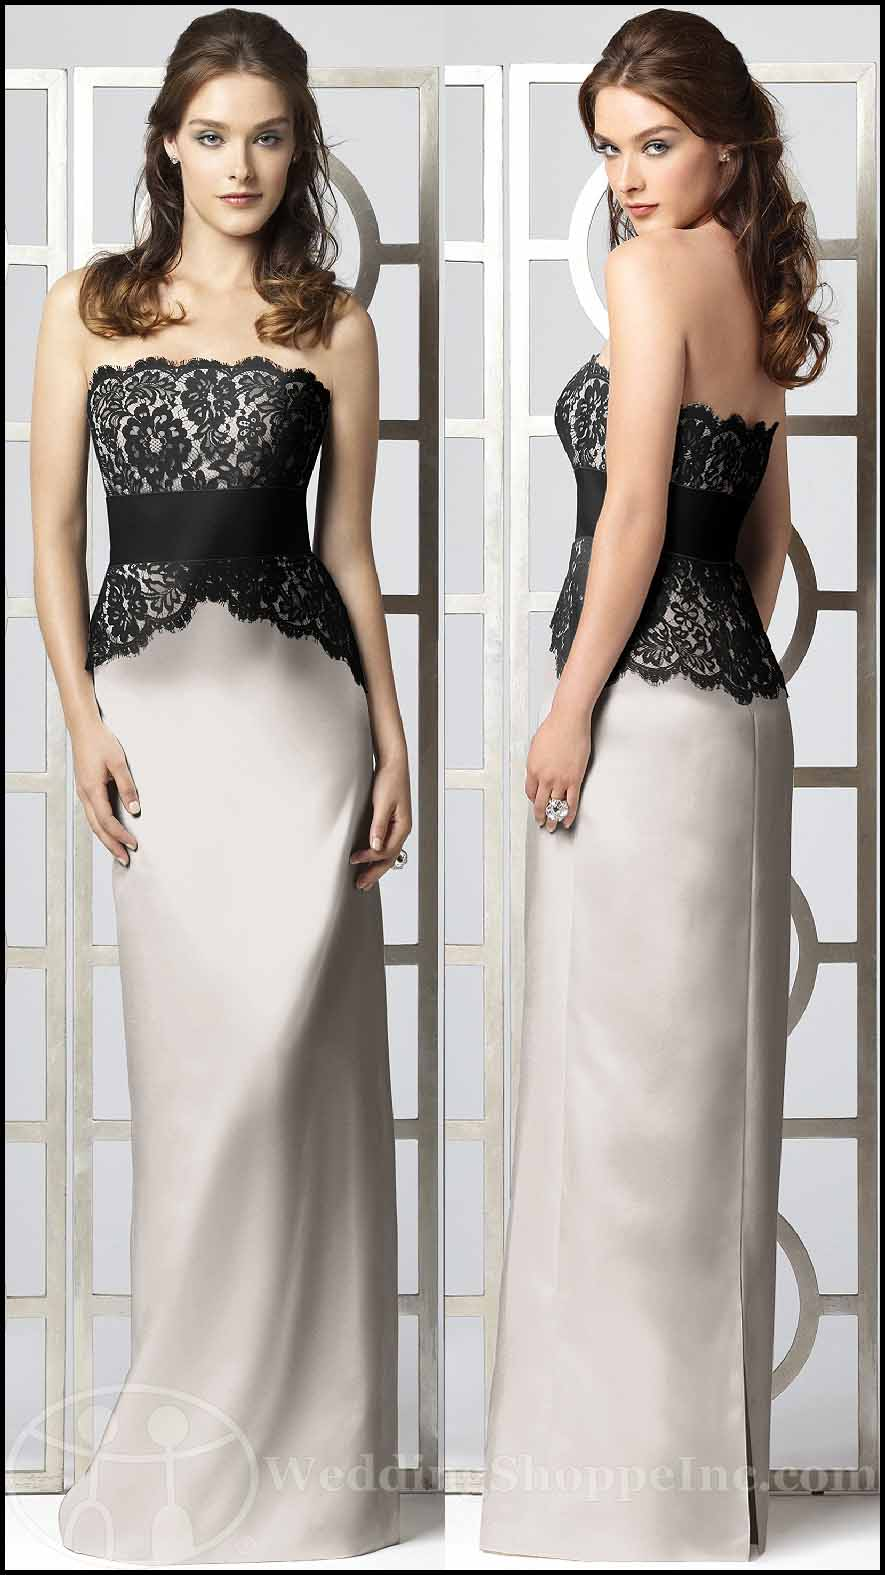 Black and white lace bridesmaid dresses fashion trends for White wedding dress black lace